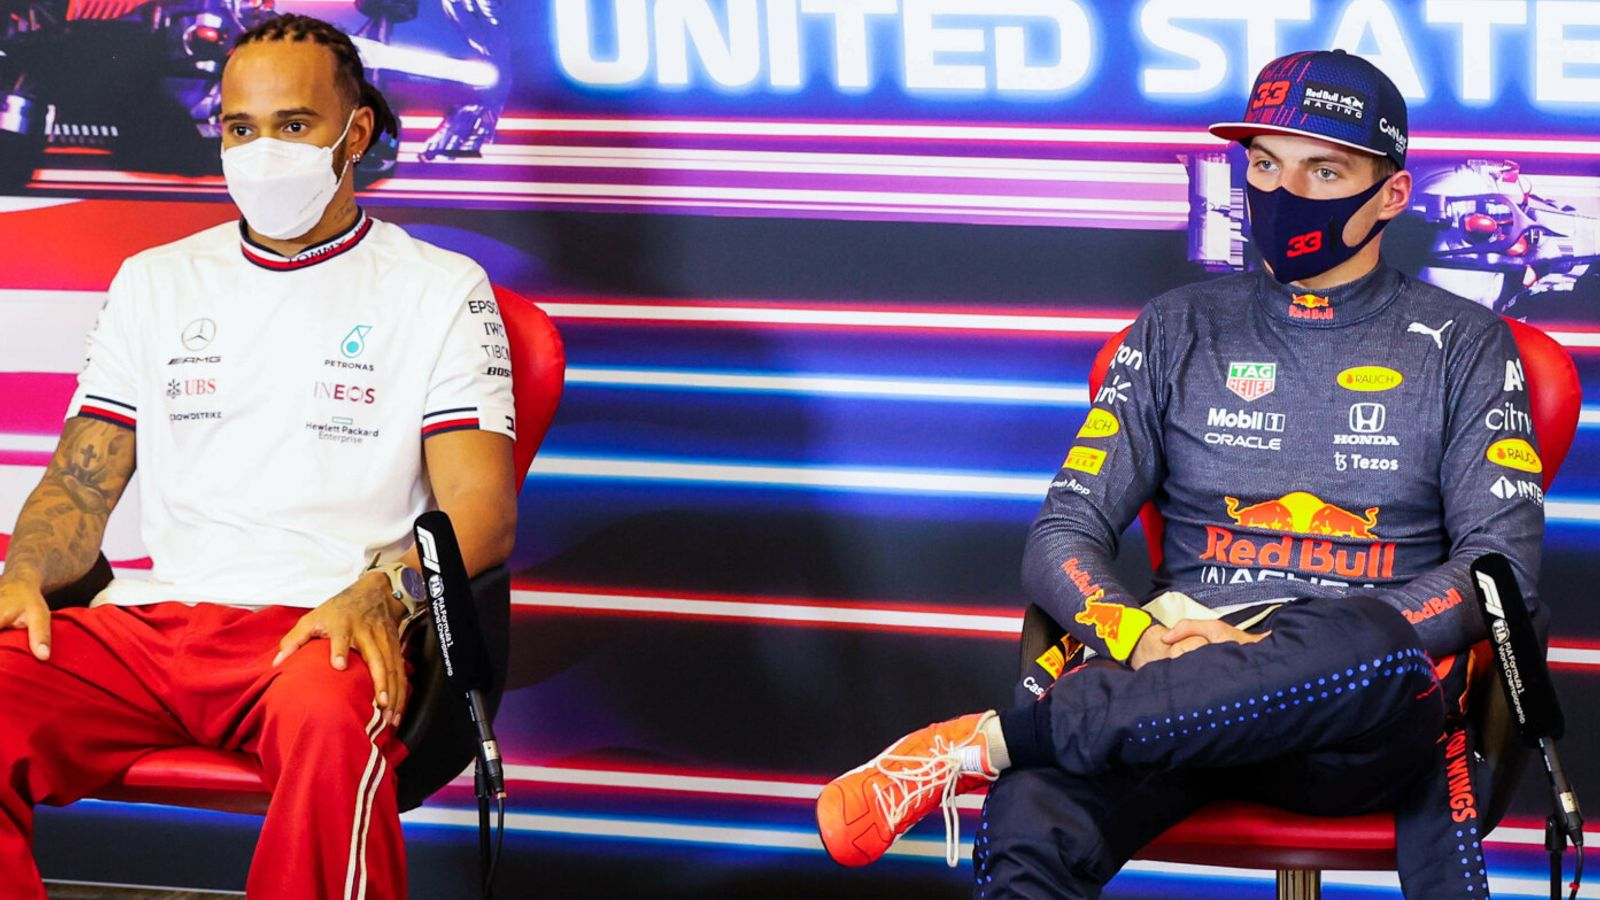 United States GP: Max Verstappen and Lewis Hamilton back on front row for F1's big Austin race day